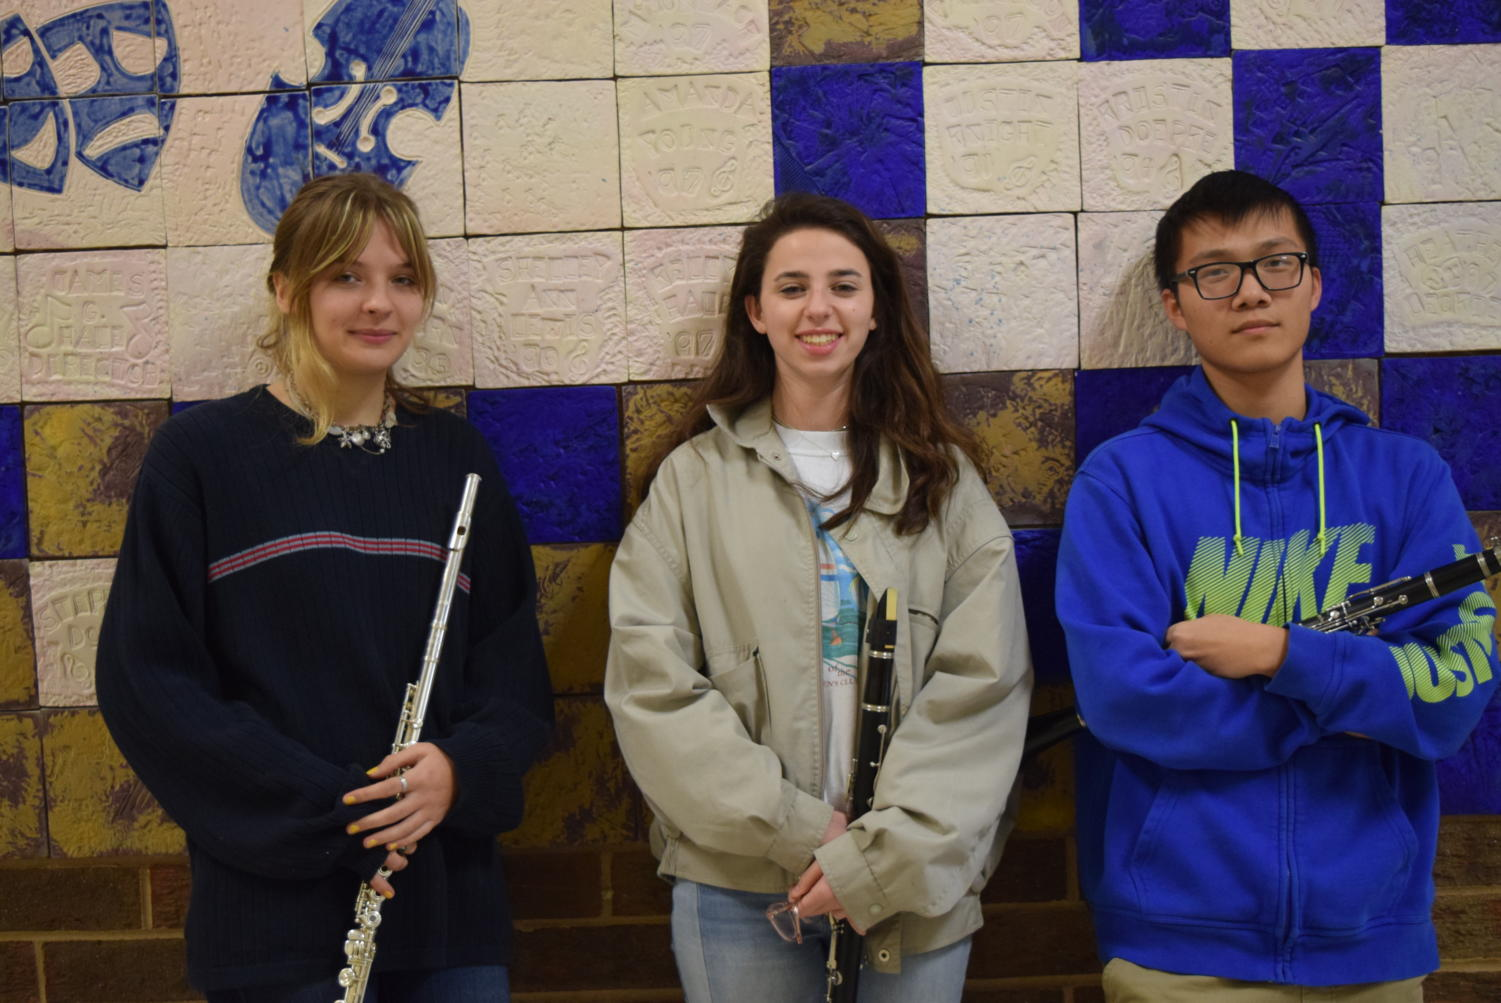 Midlothian High School All-District Band: Mary Bock, Emily Whitlow, and Vic Lin